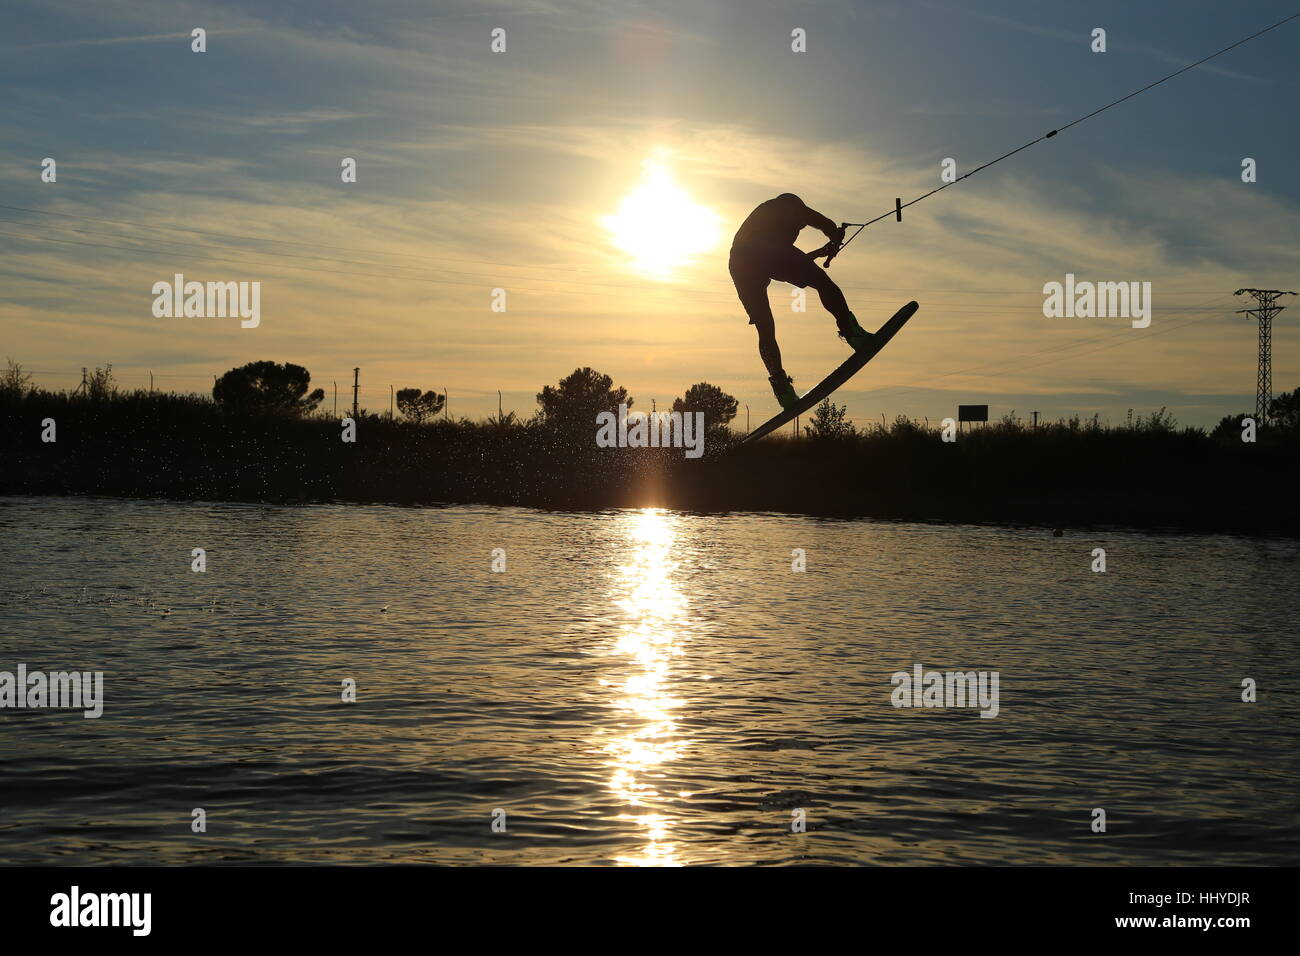 Sunset wakeboarding session in Alpipark. - Stock Image